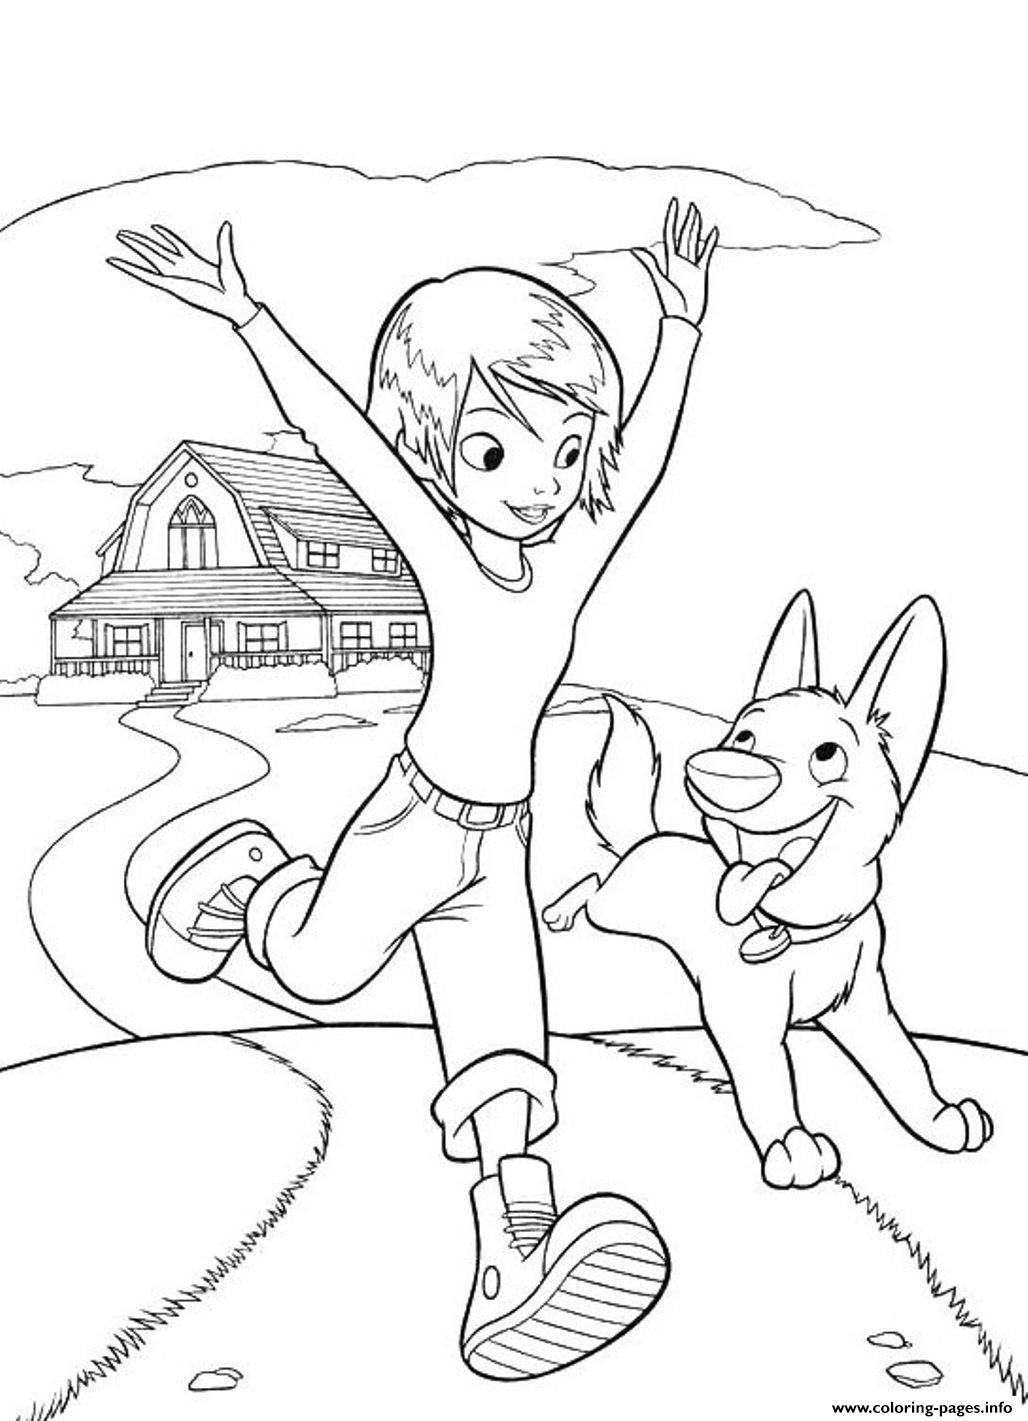 free printable cartoon s bolt for kids2317 coloring pages printable